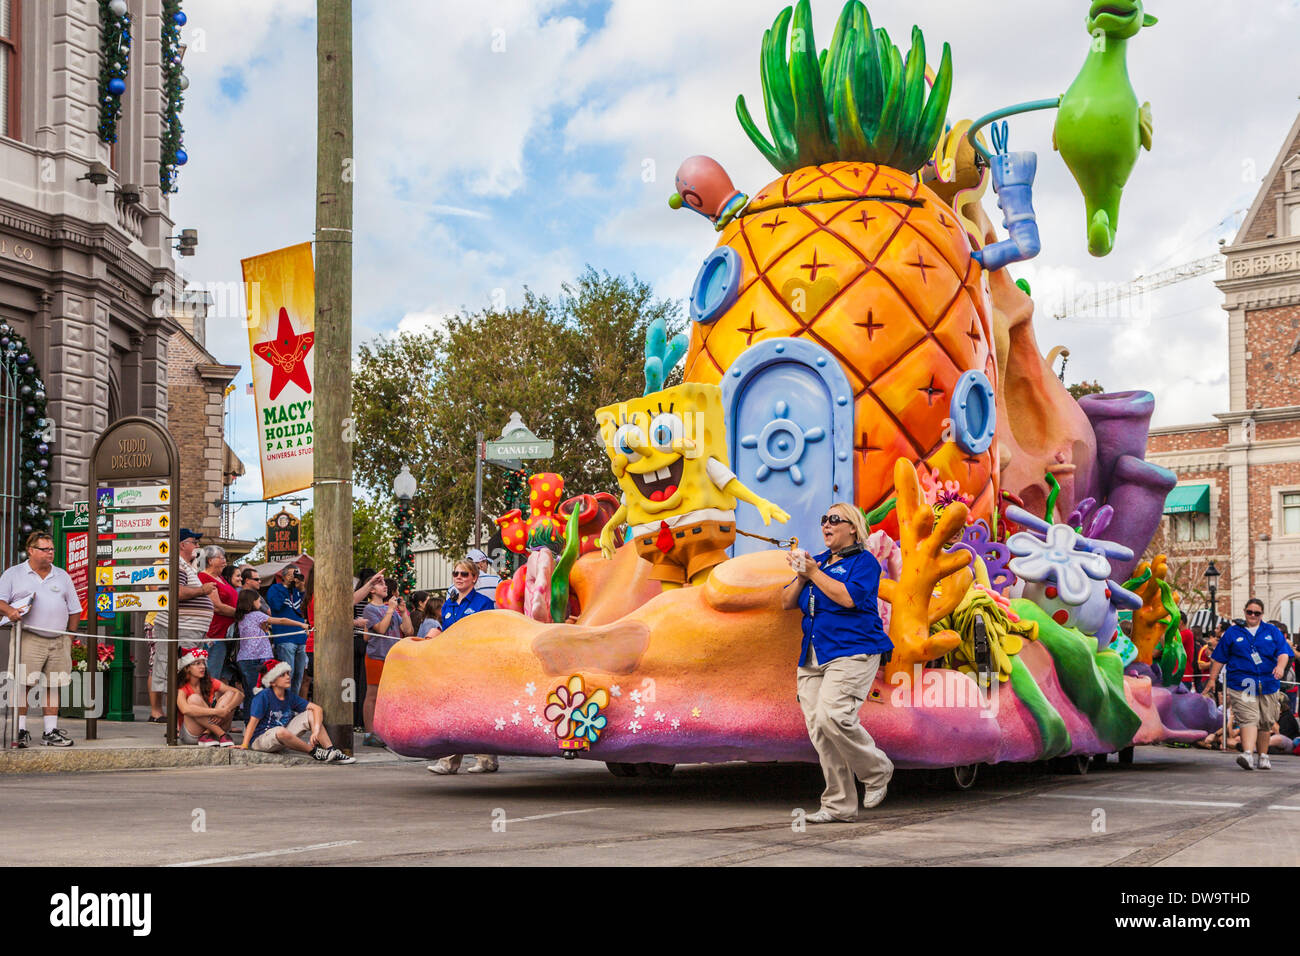 SpongeBob SquarePants And Friends On Parade Float In Universal Studios Theme Park Orlando Florida